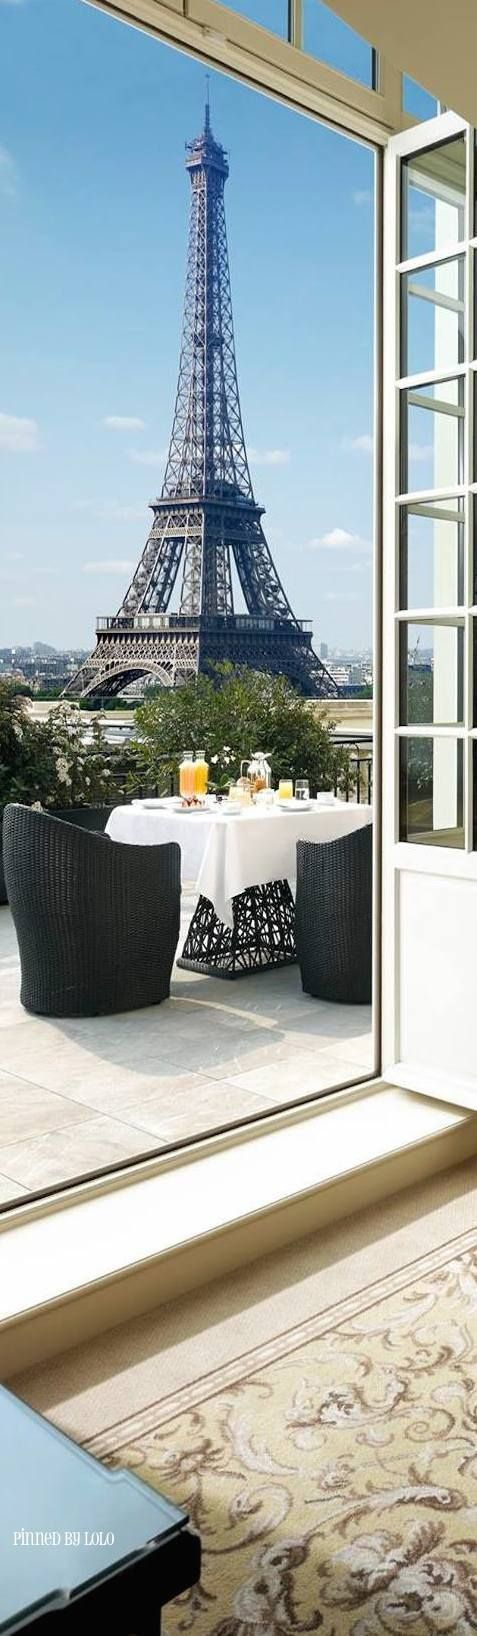 Fascinating view of the Eiffel at breakfast - France: